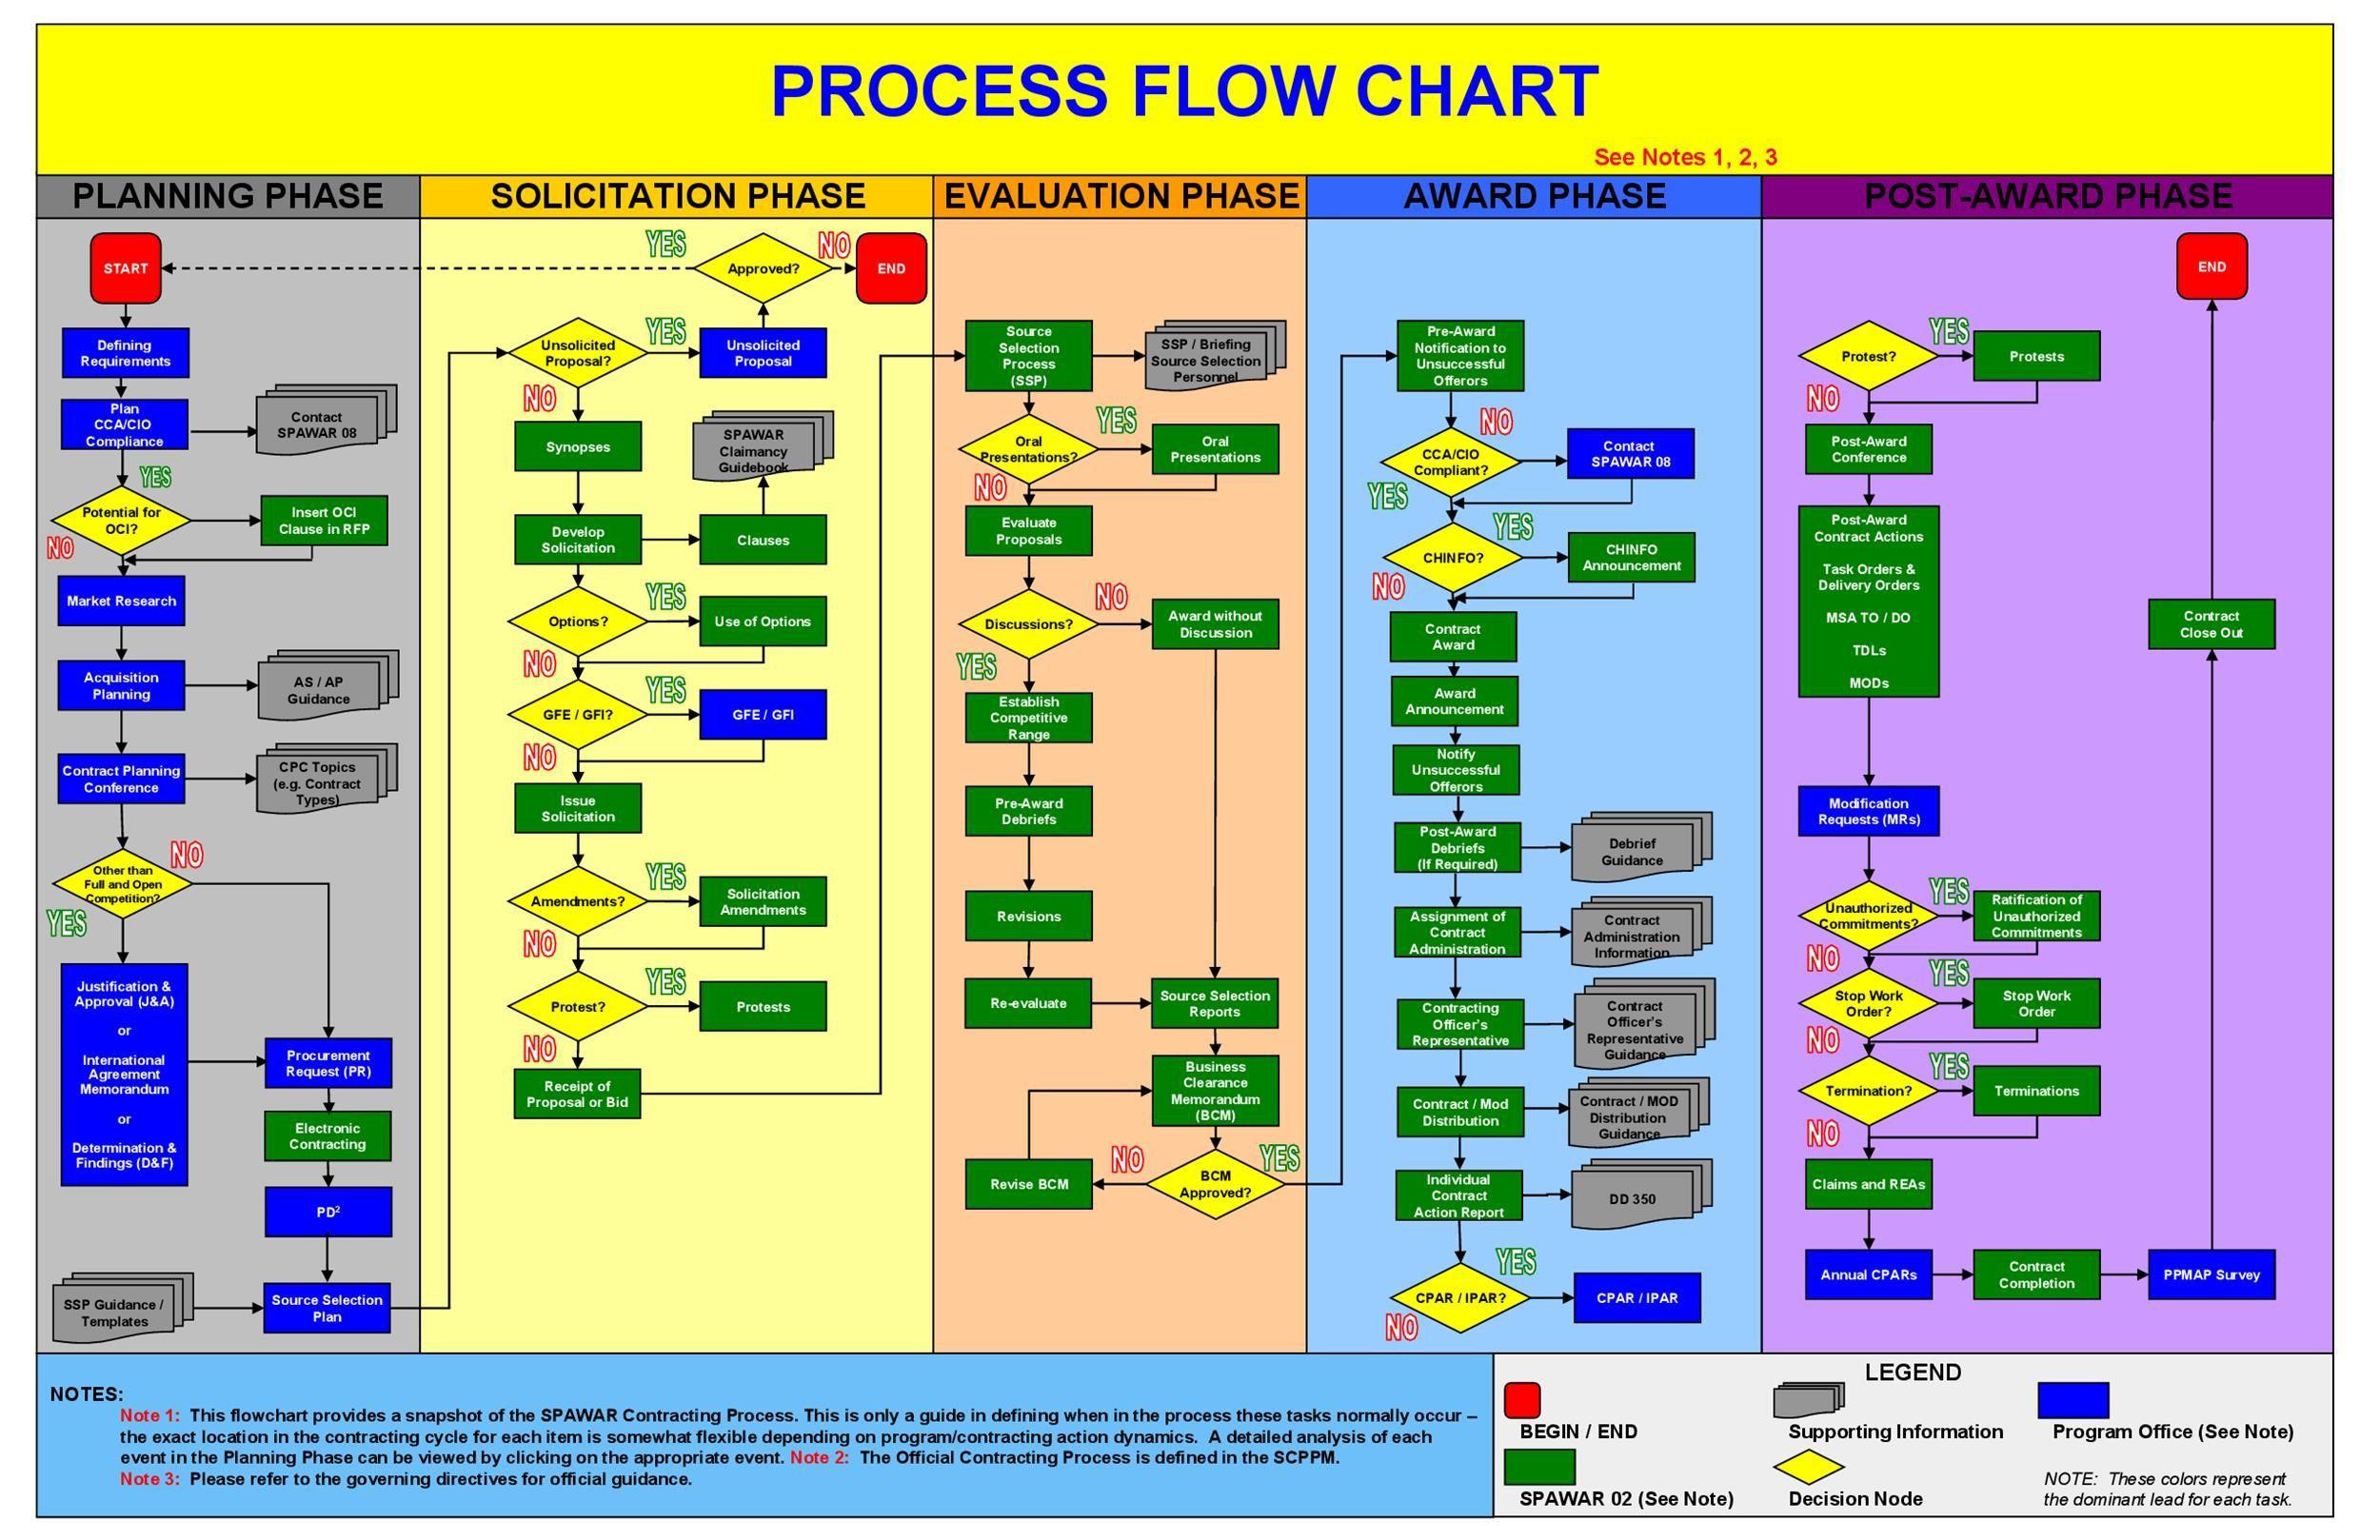 005 Impressive Detailed Proces Map Template Excel Image  Swimlane Flow Chart ThoughtFull